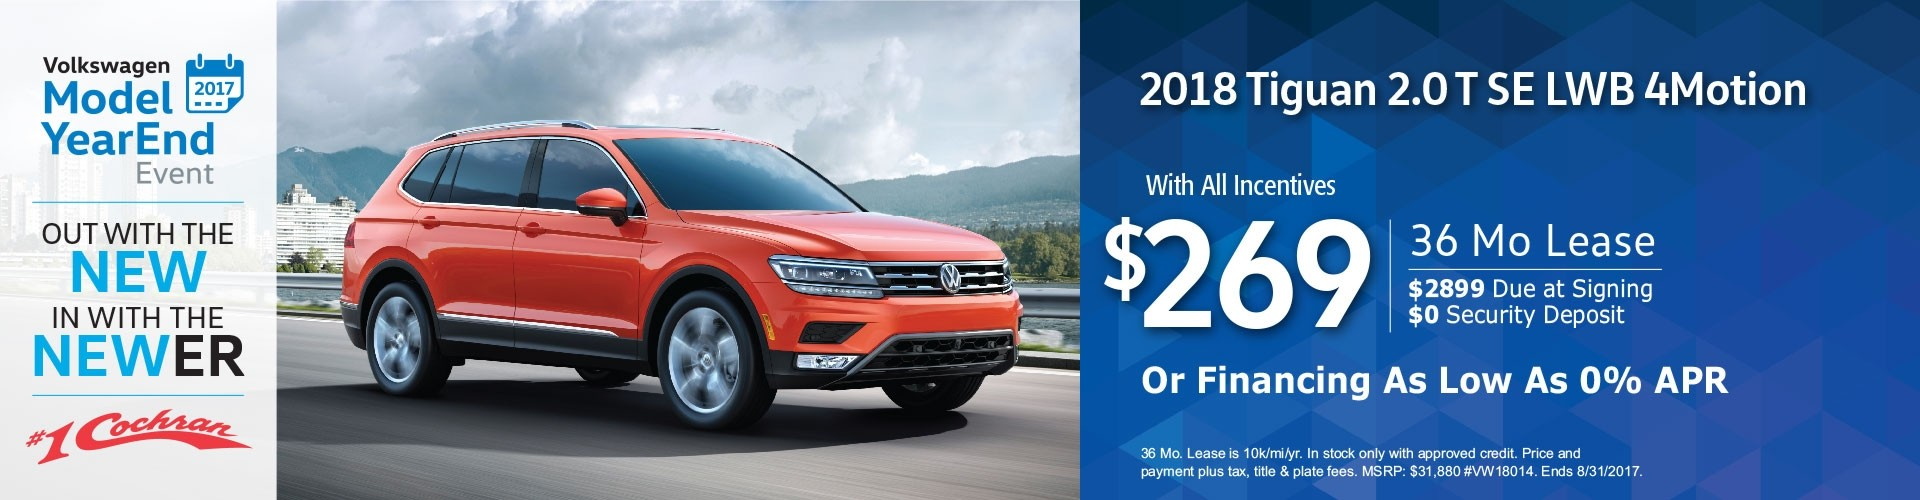 Car Dealerships In Fresno Ca >> 1 Cochran Volkswagen Of North Hills | Upcomingcarshq.com